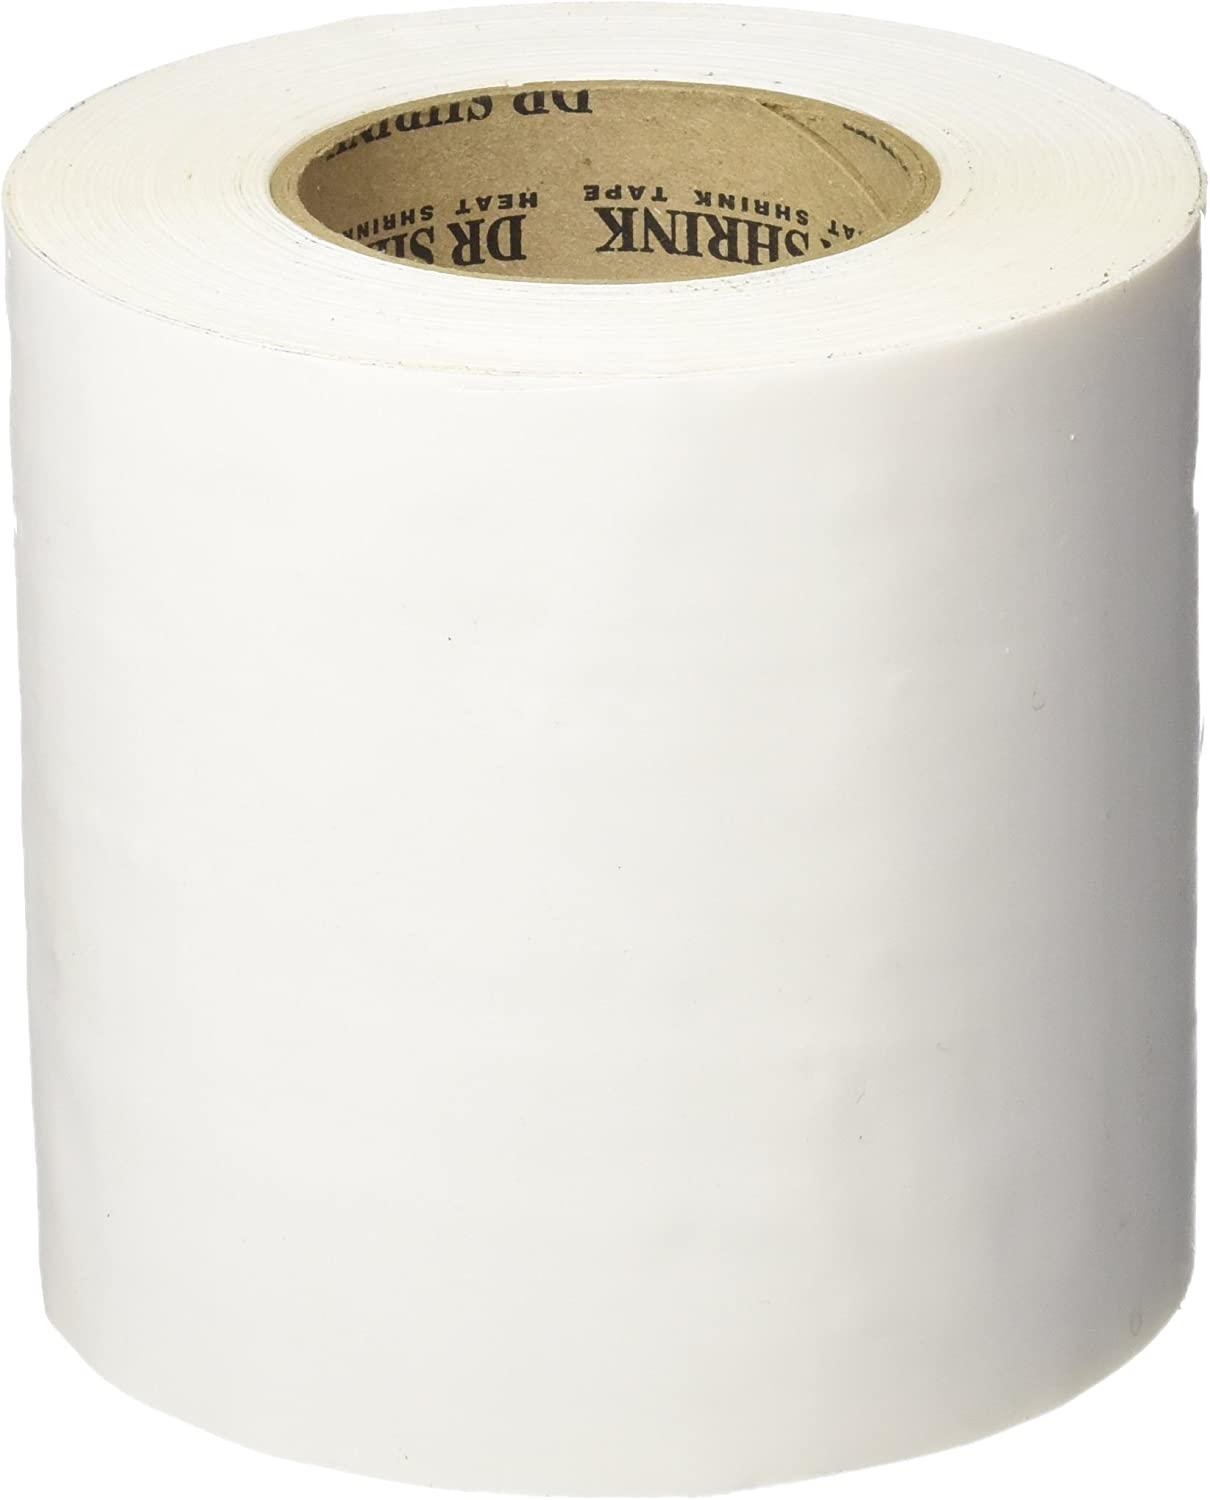 "Heat Shrink Tape 4"" x 60 Yd 4 Rolls DR SHRINK White DS 704 W 180'"